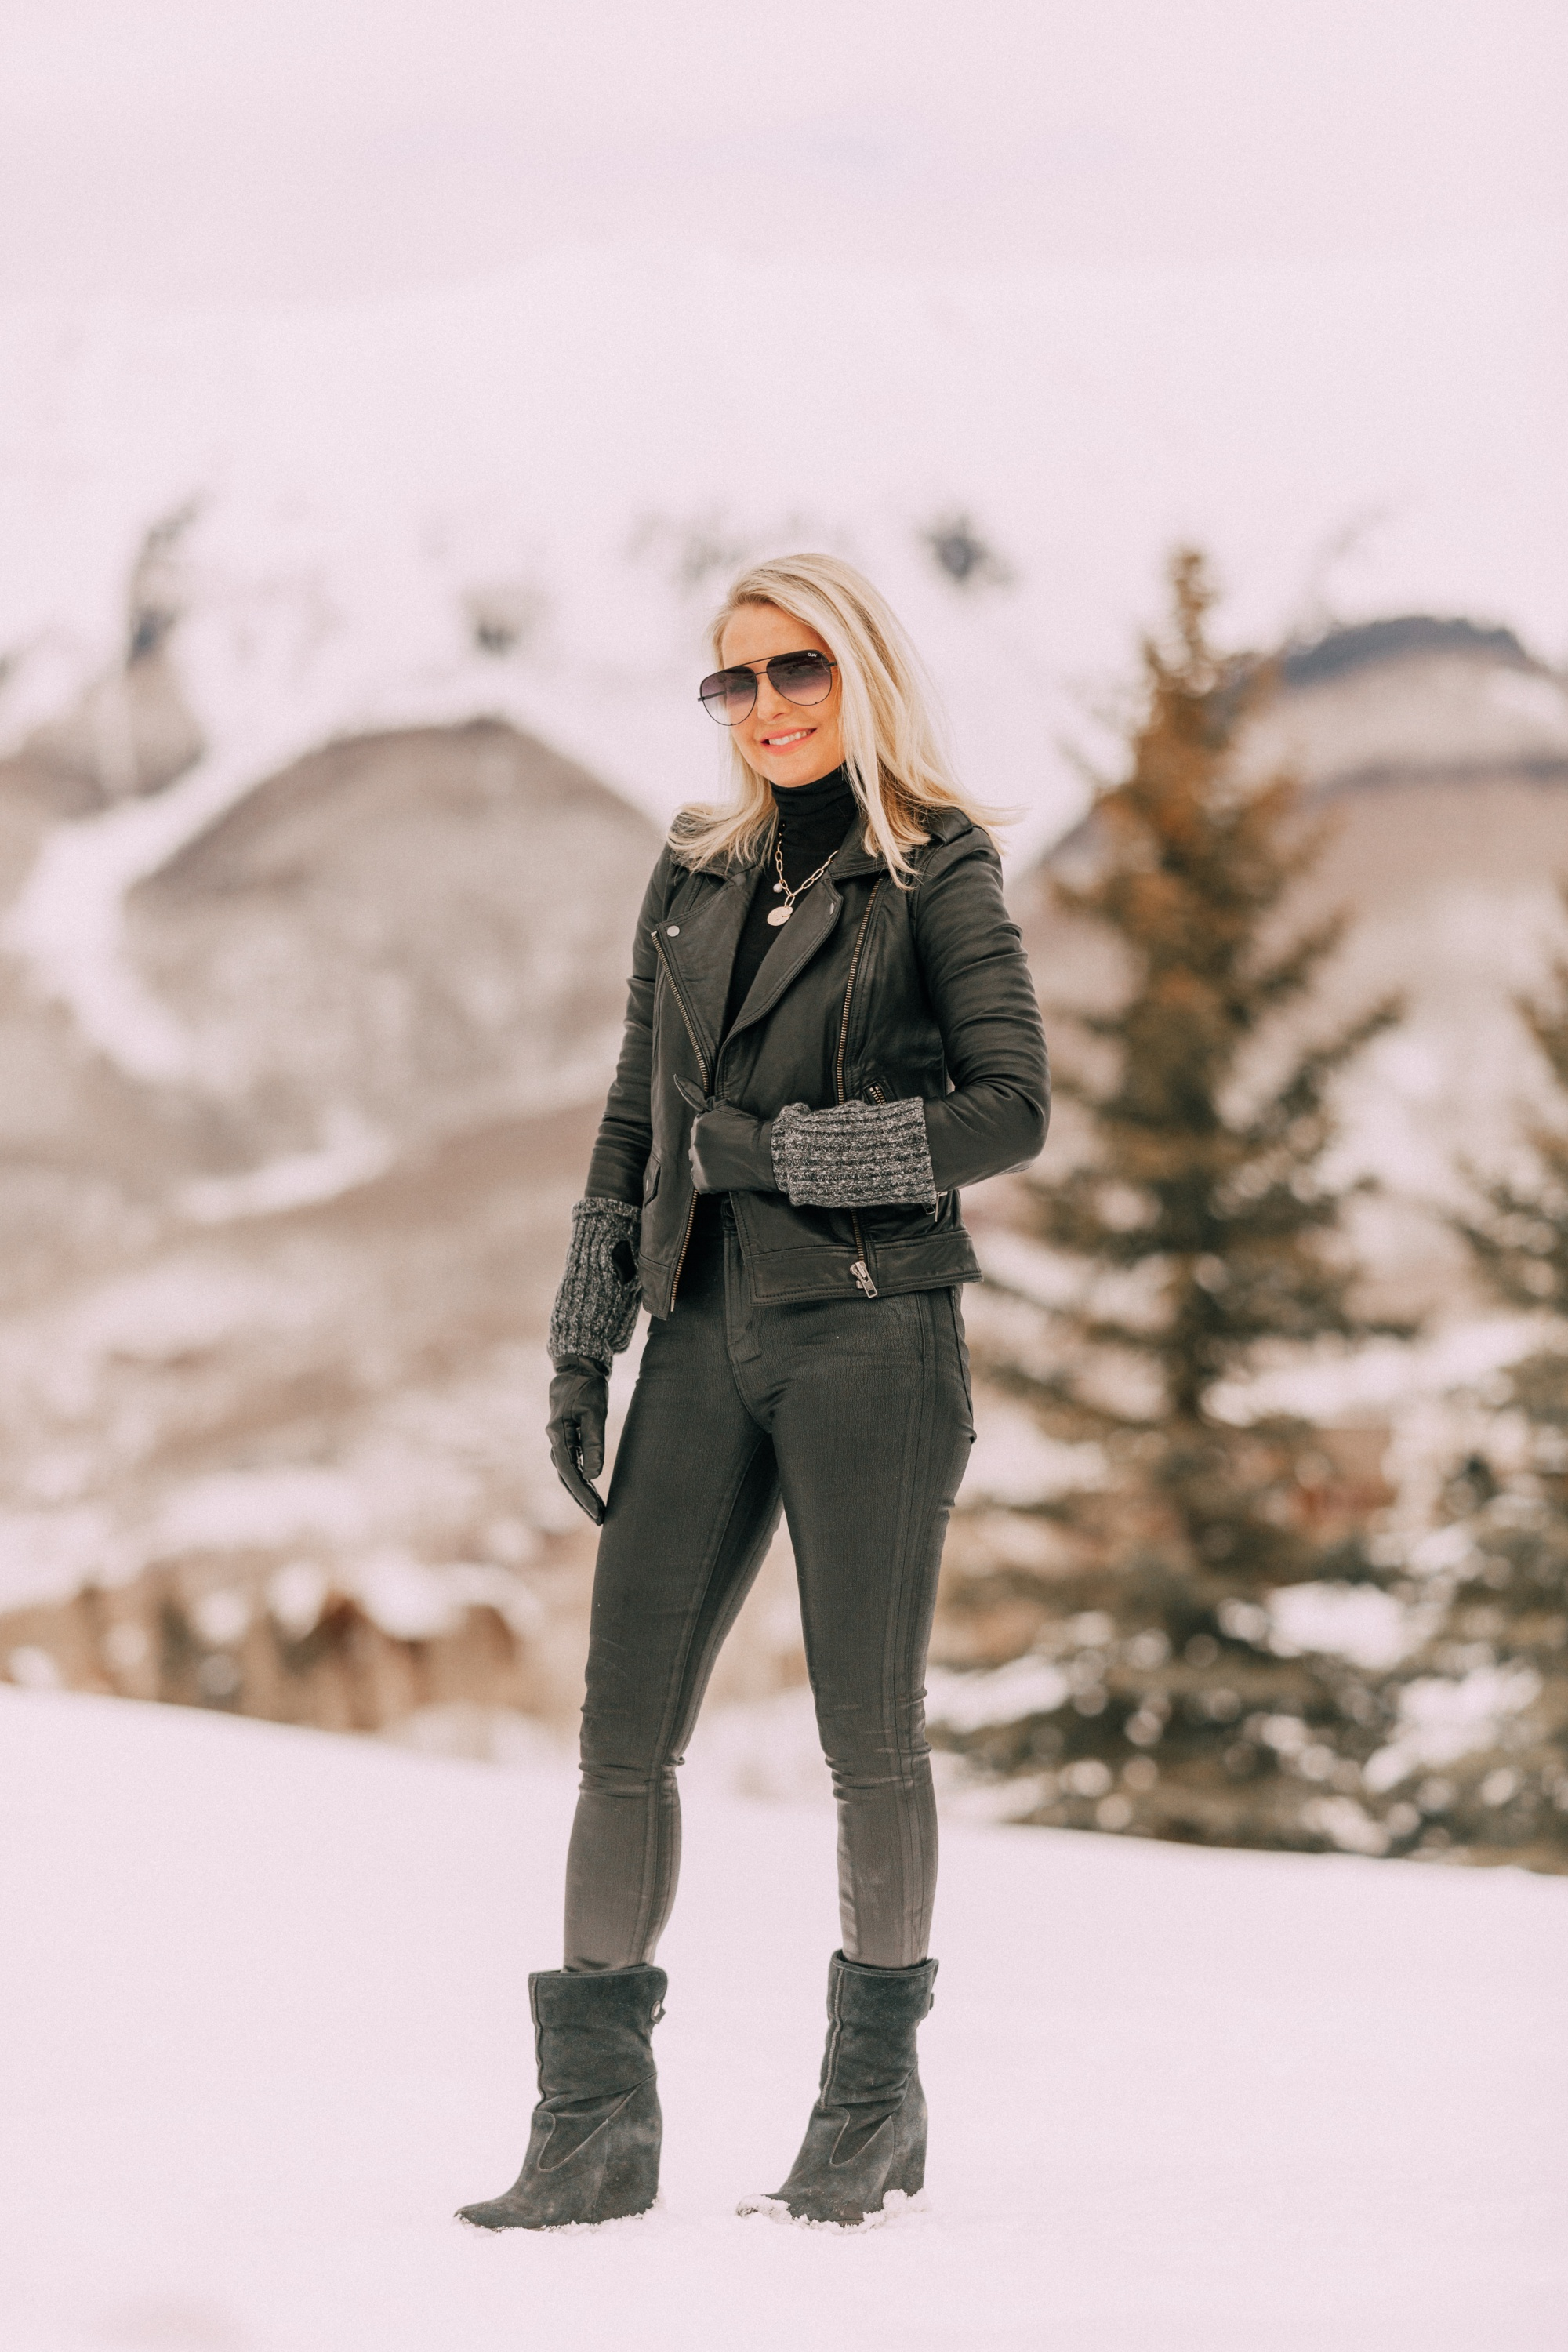 layered Moto Jacket outfit on Fashion blogger wearing a black leather IRO moto jacket, Carolina Amato gloves, rocket leatherette skinny jeans by Citizens of Humanity, black cashmere turtleneck, and Ugg wedge boots in Telluride, CO